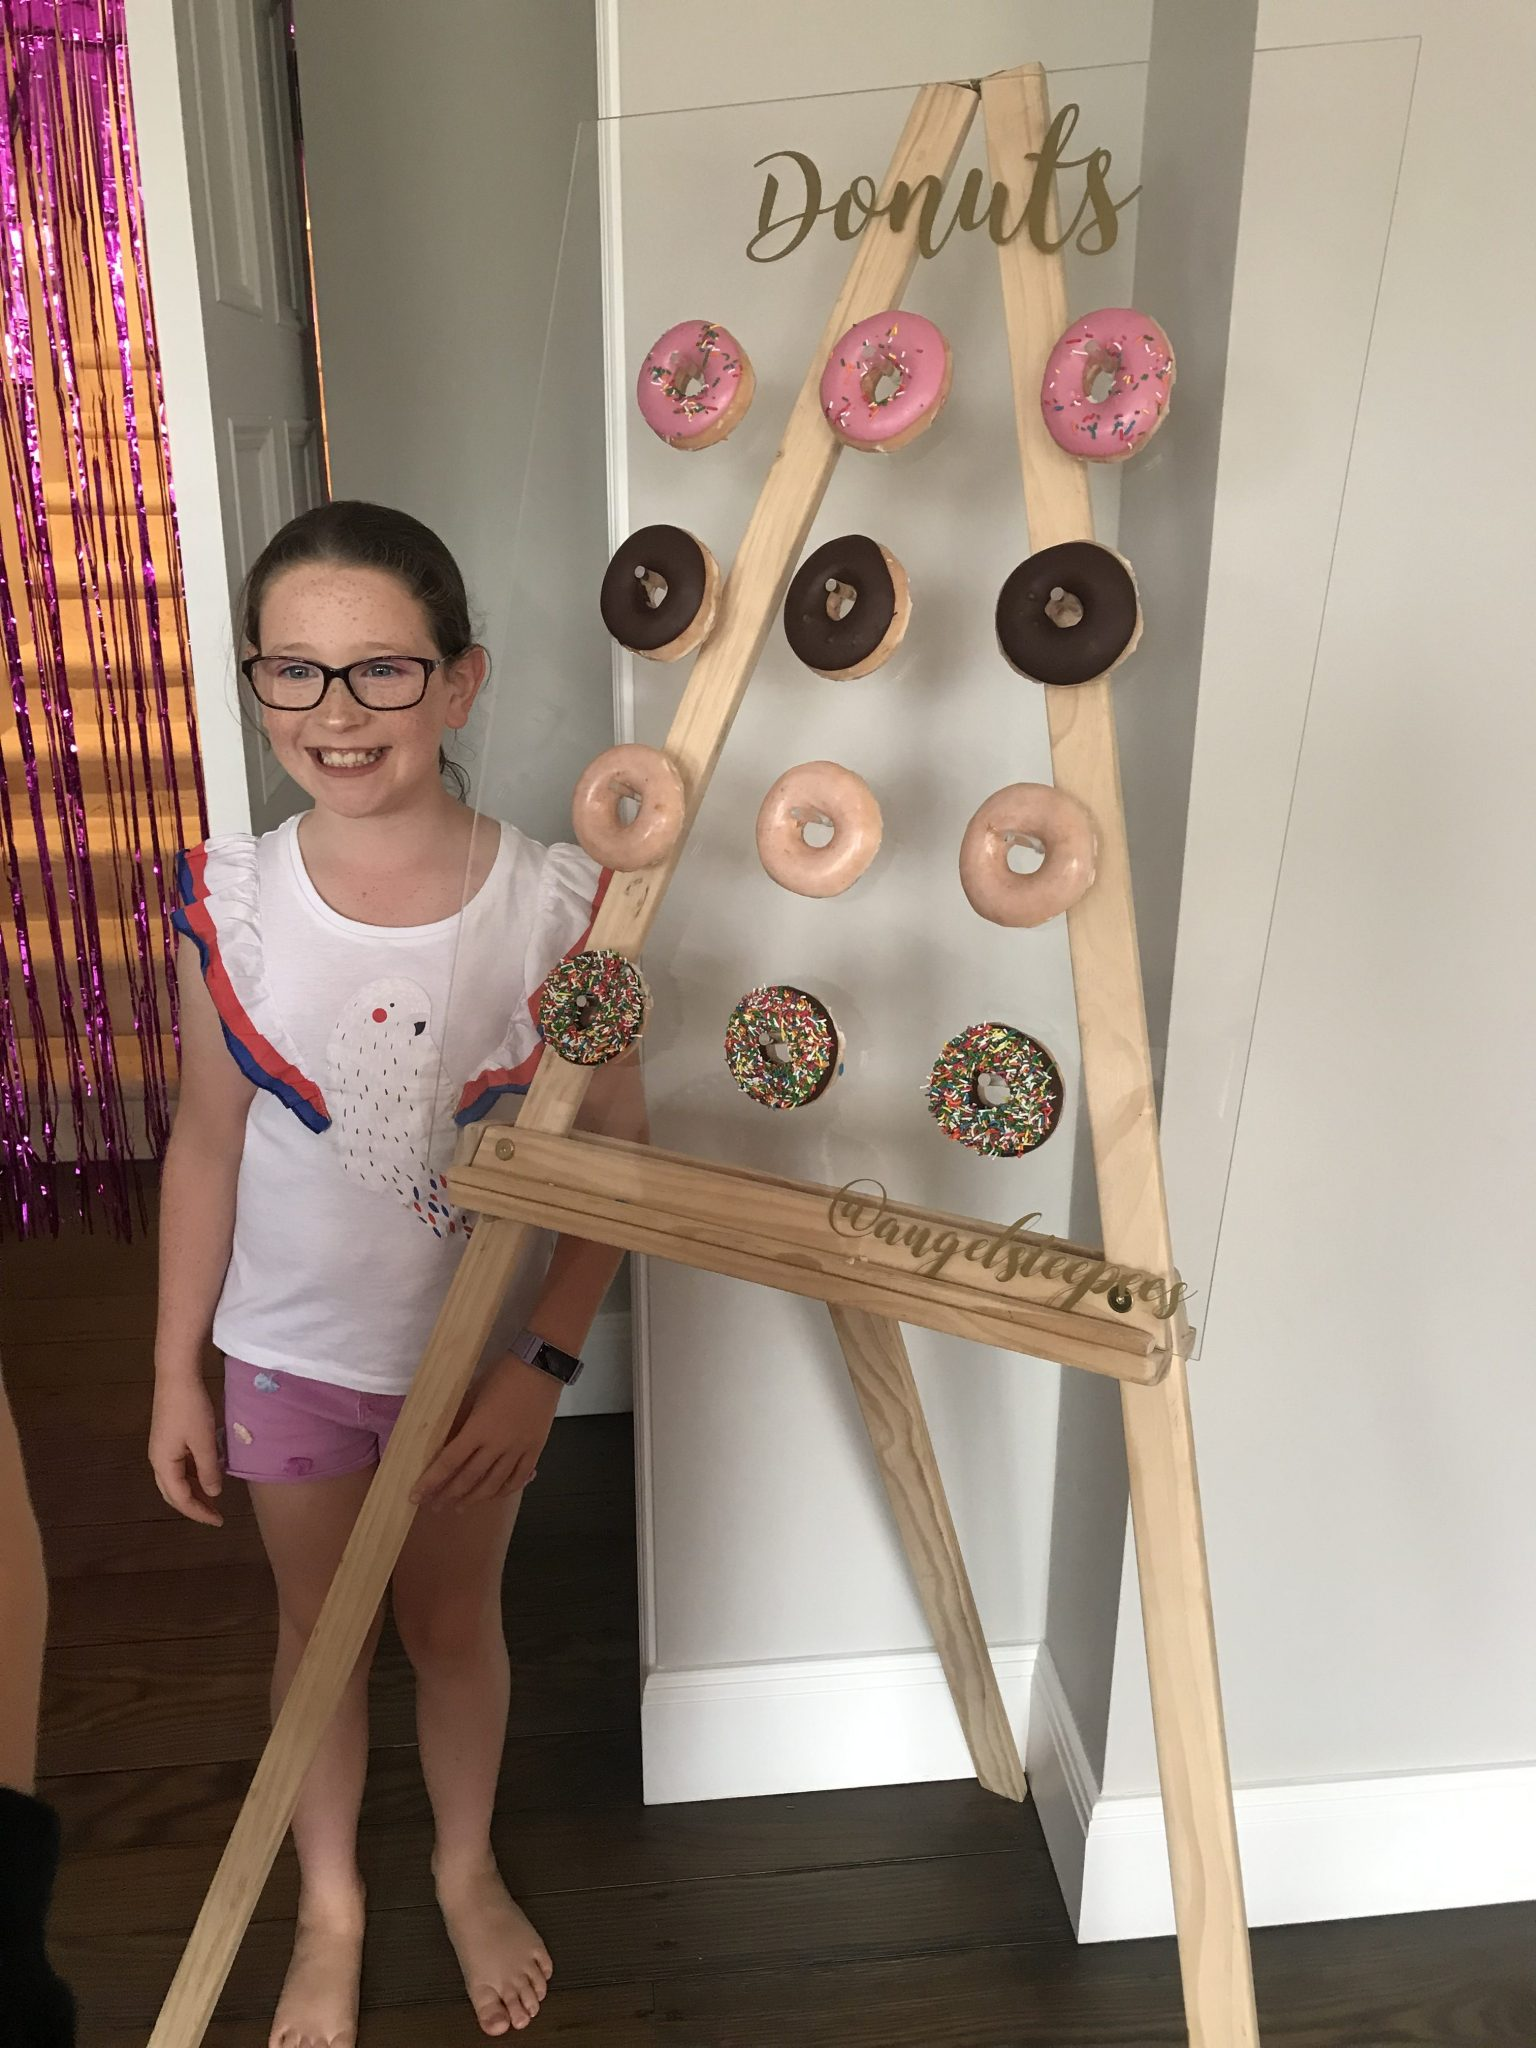 Donut Wall Add-on, Delicious Donut wall by Angels Teepees, slumber parties, spa parties Sydney